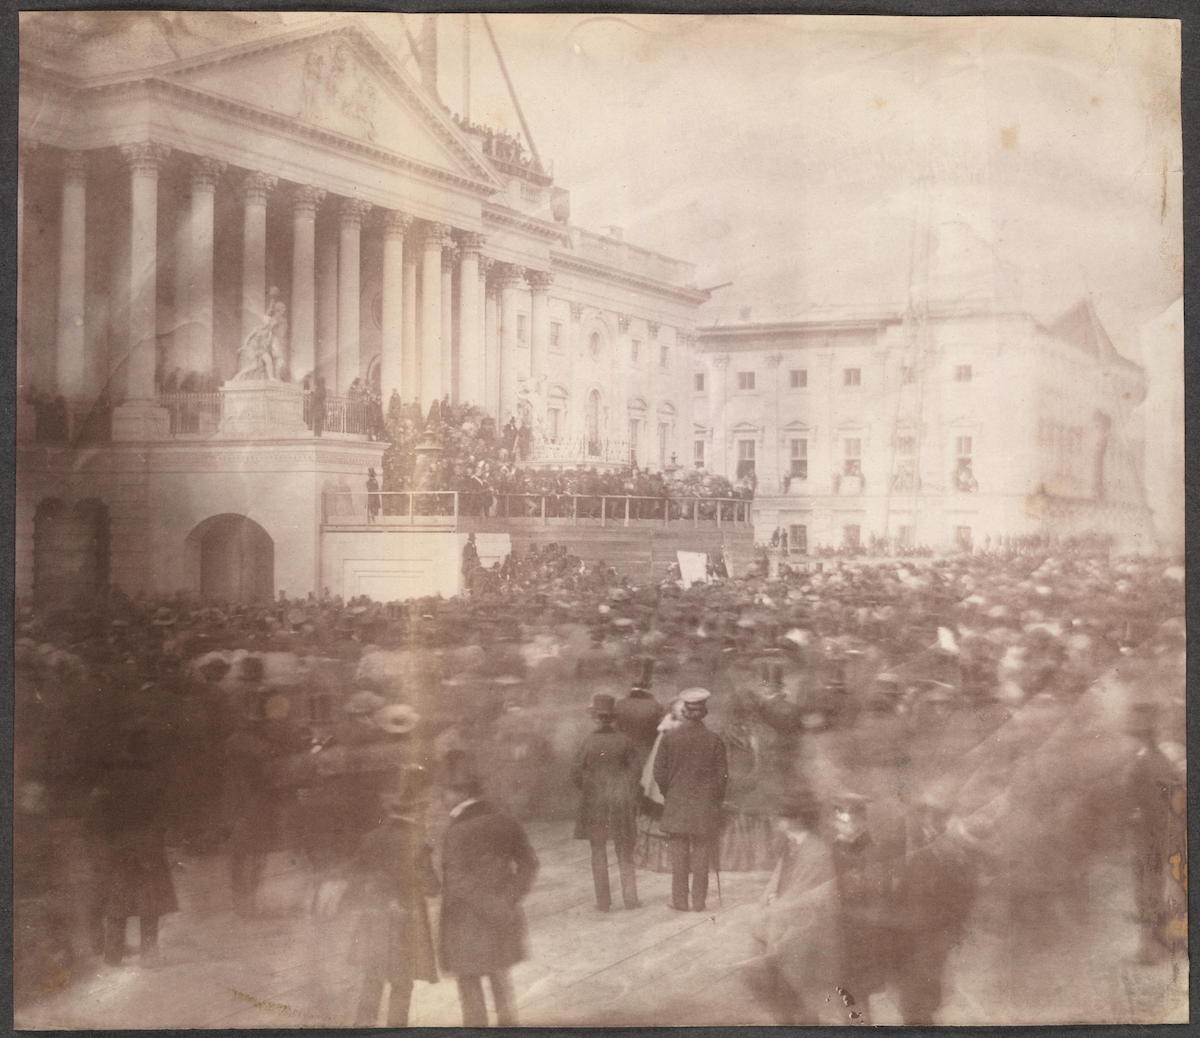 This is the Oldest Known Photo of a U.S. Presidential Inauguration - James Buchanan 1857